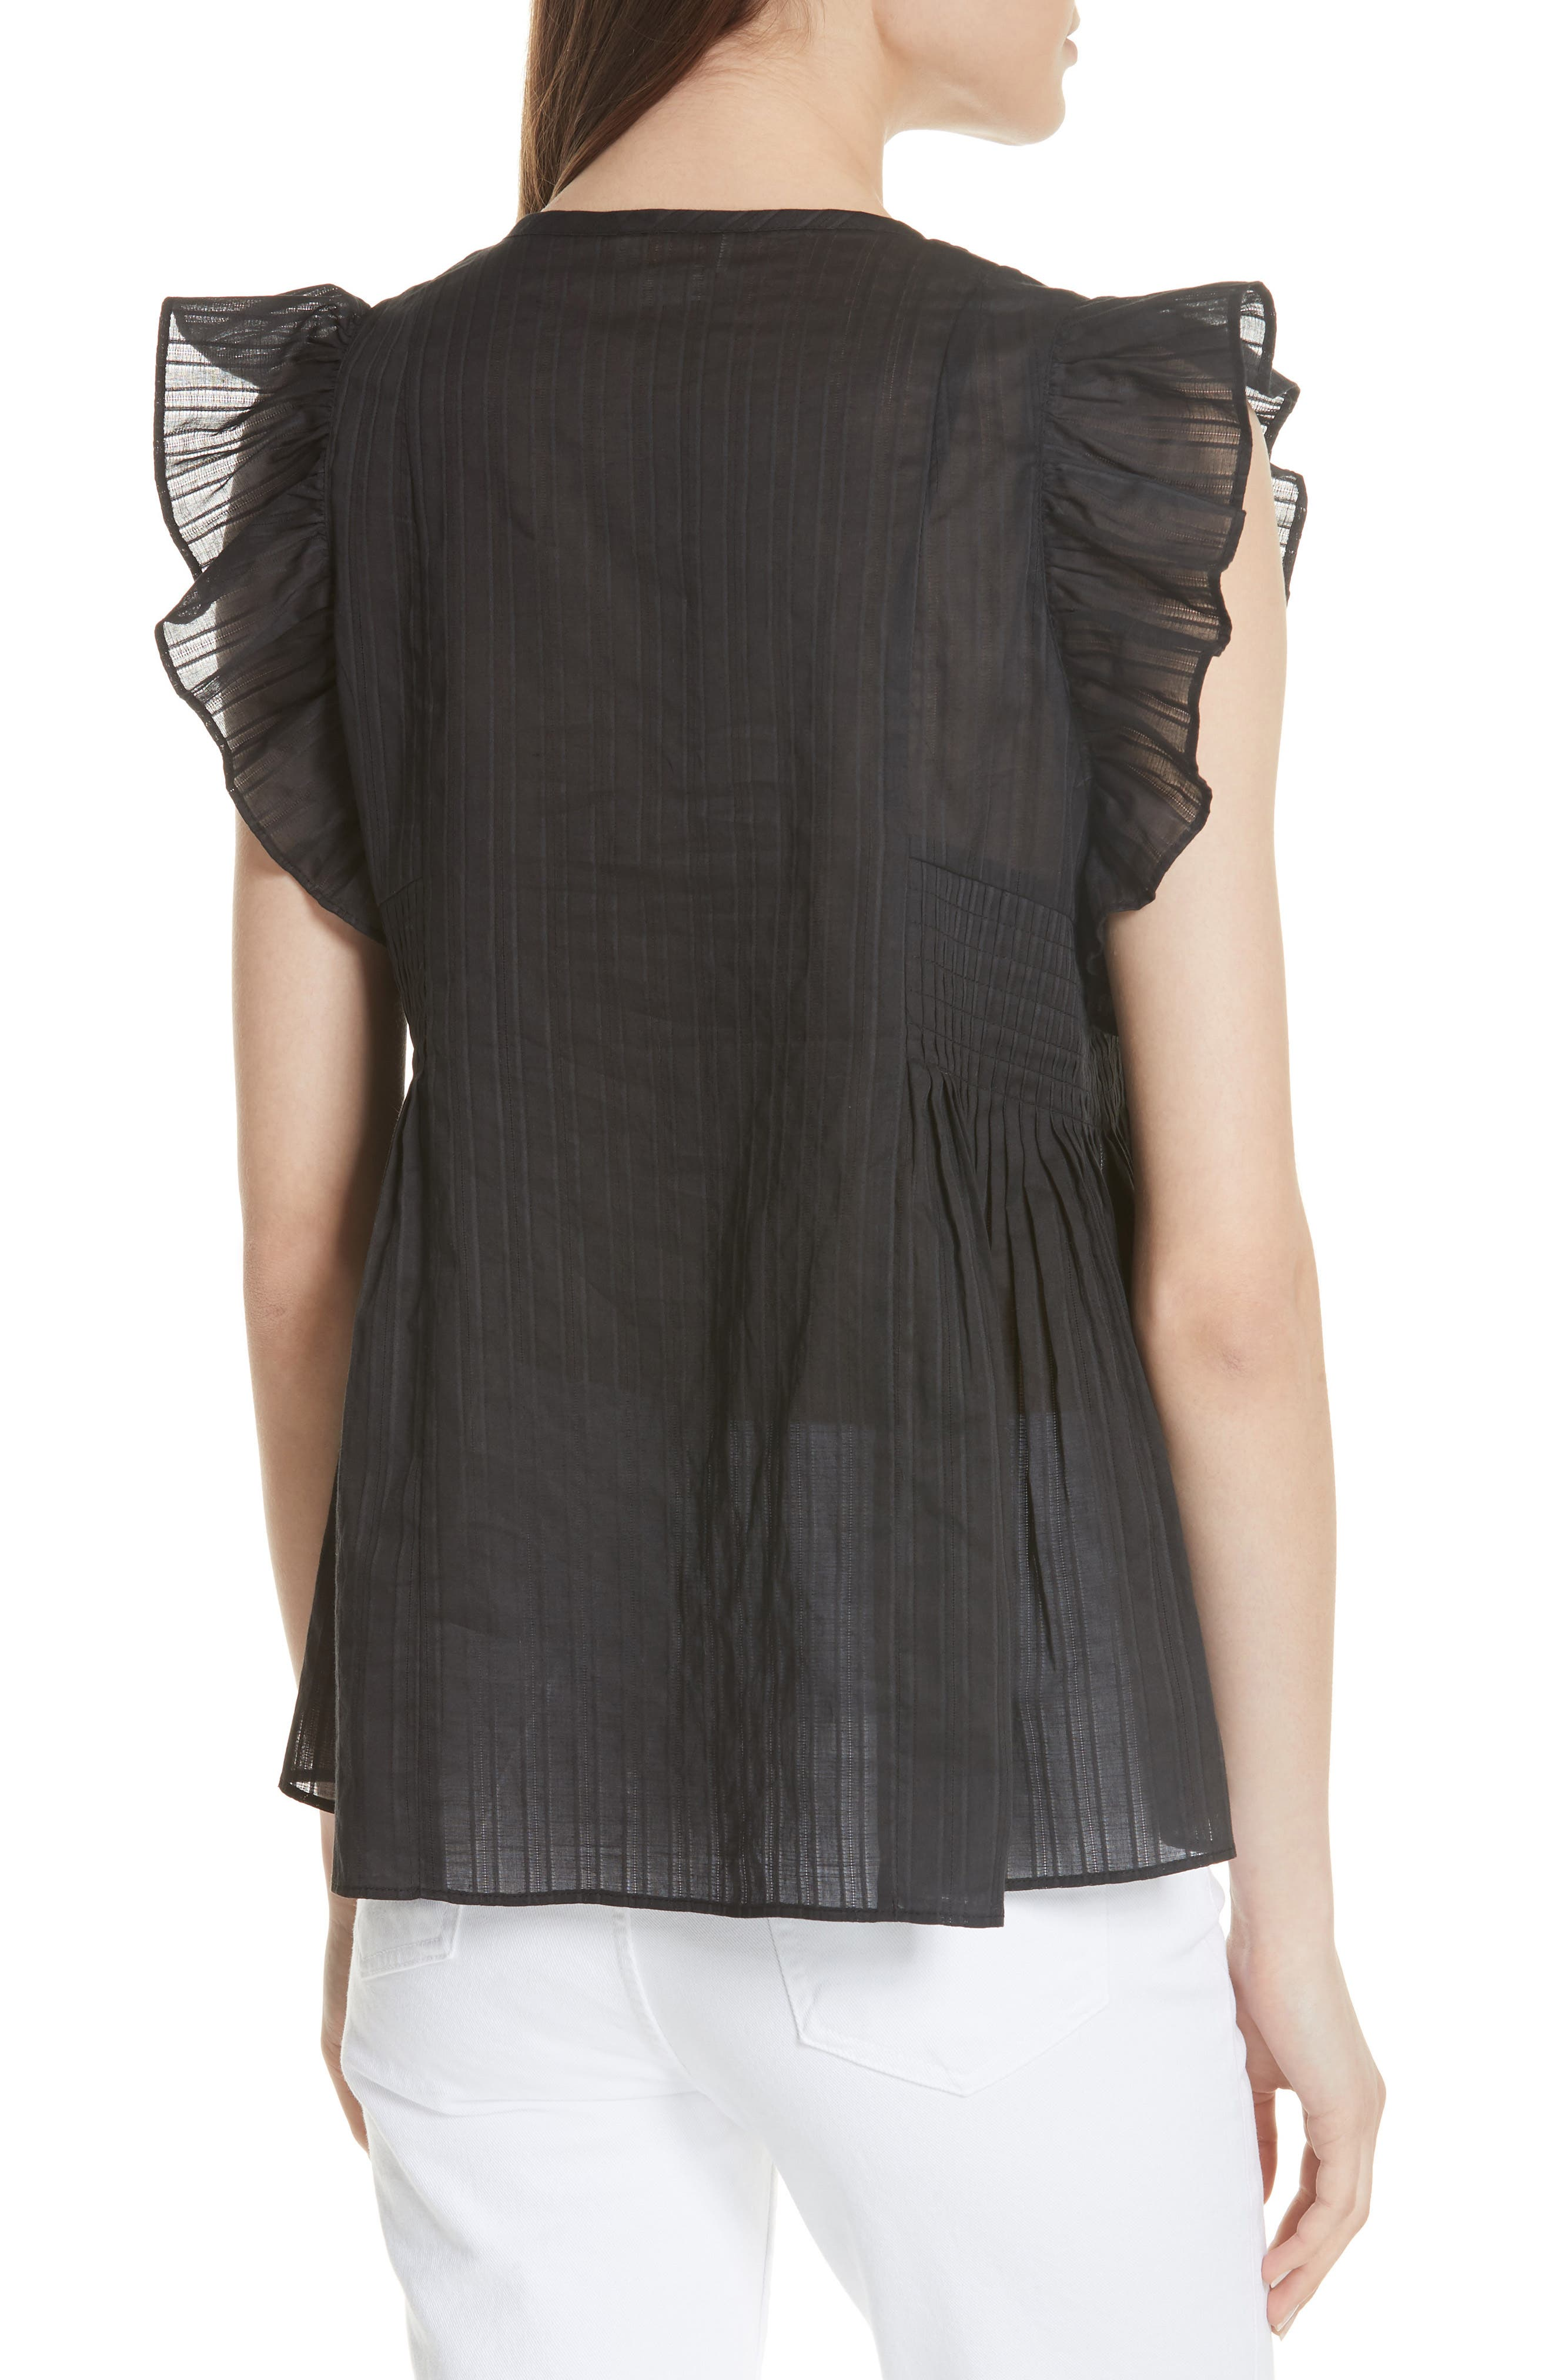 KATE SPADE NEW YORK,                             mosaic embroidered tassel top,                             Alternate thumbnail 2, color,                             001